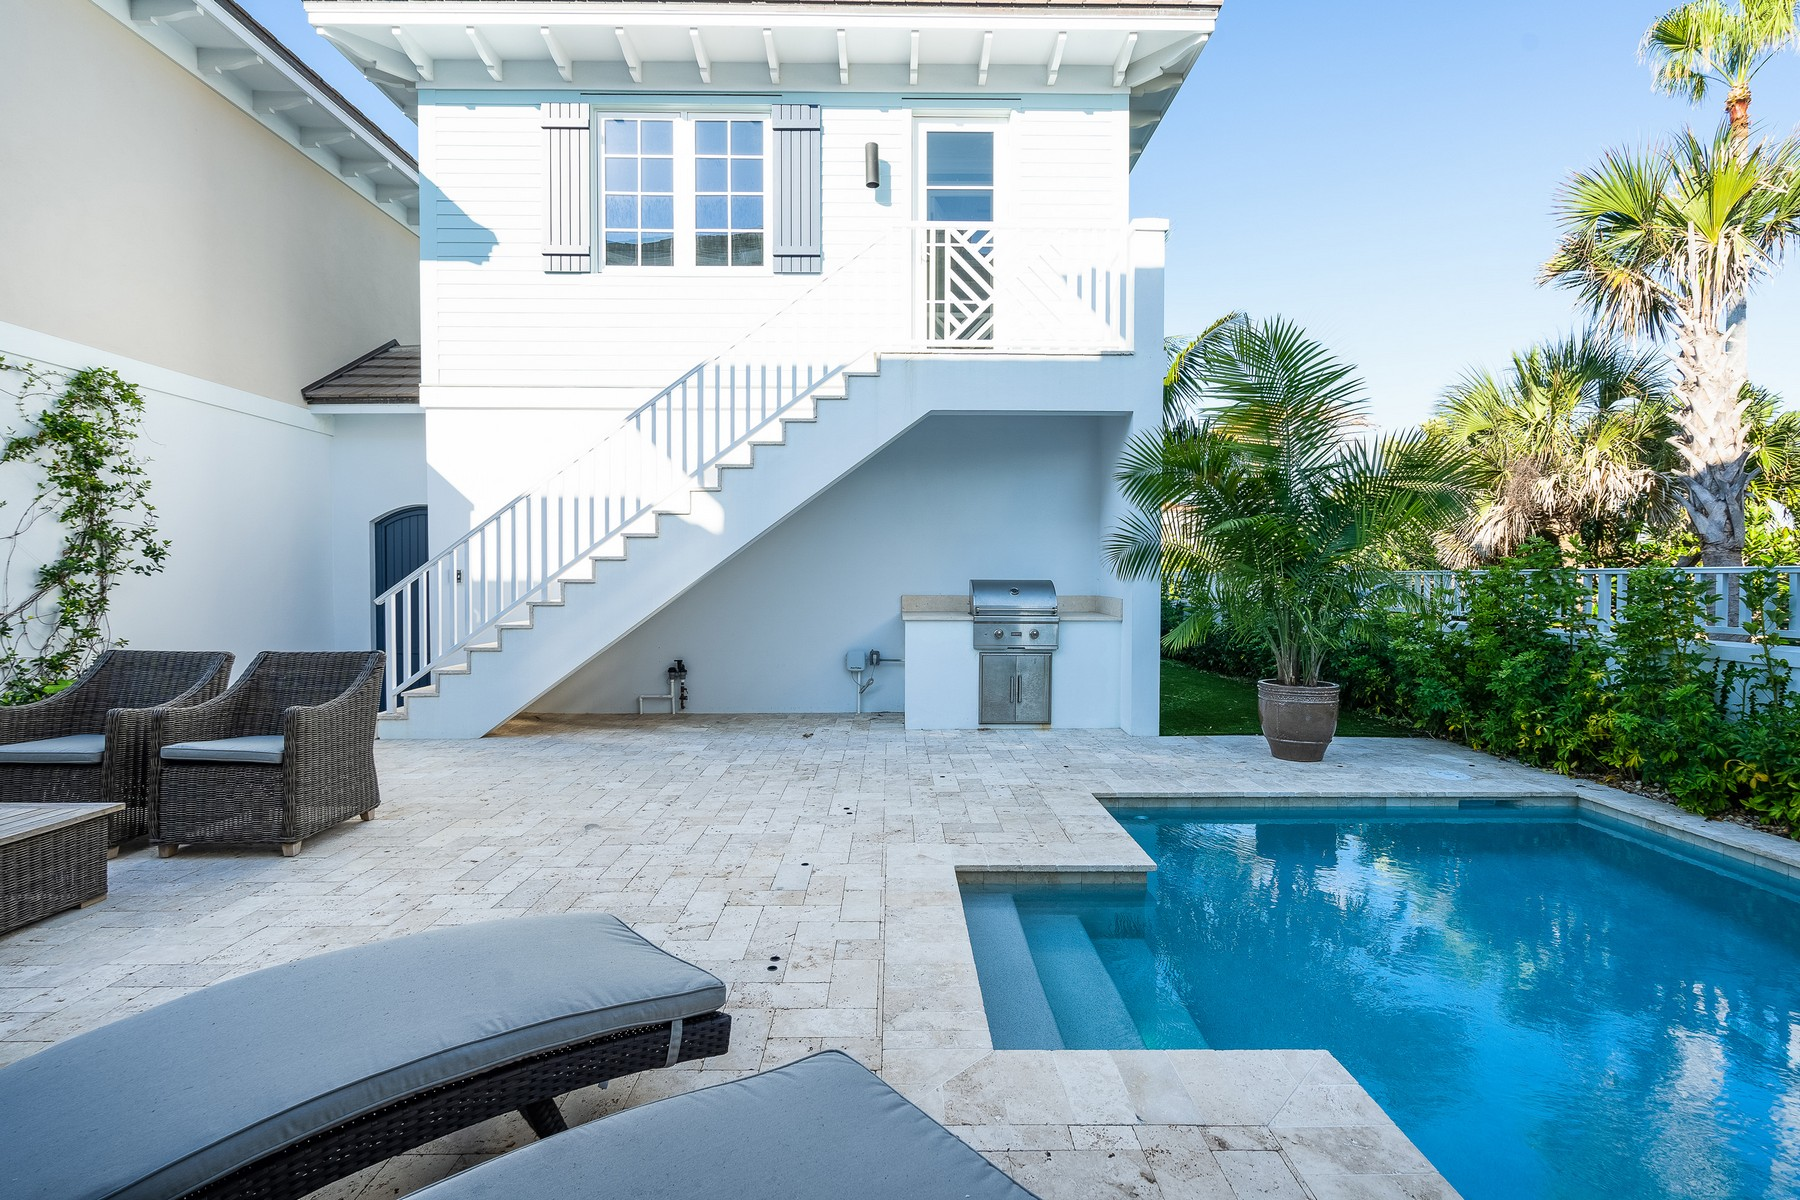 Additional photo for property listing at Luxurious Oceanfront Townhome 4798 Highway A1A Vero Beach, Florida 32963 United States